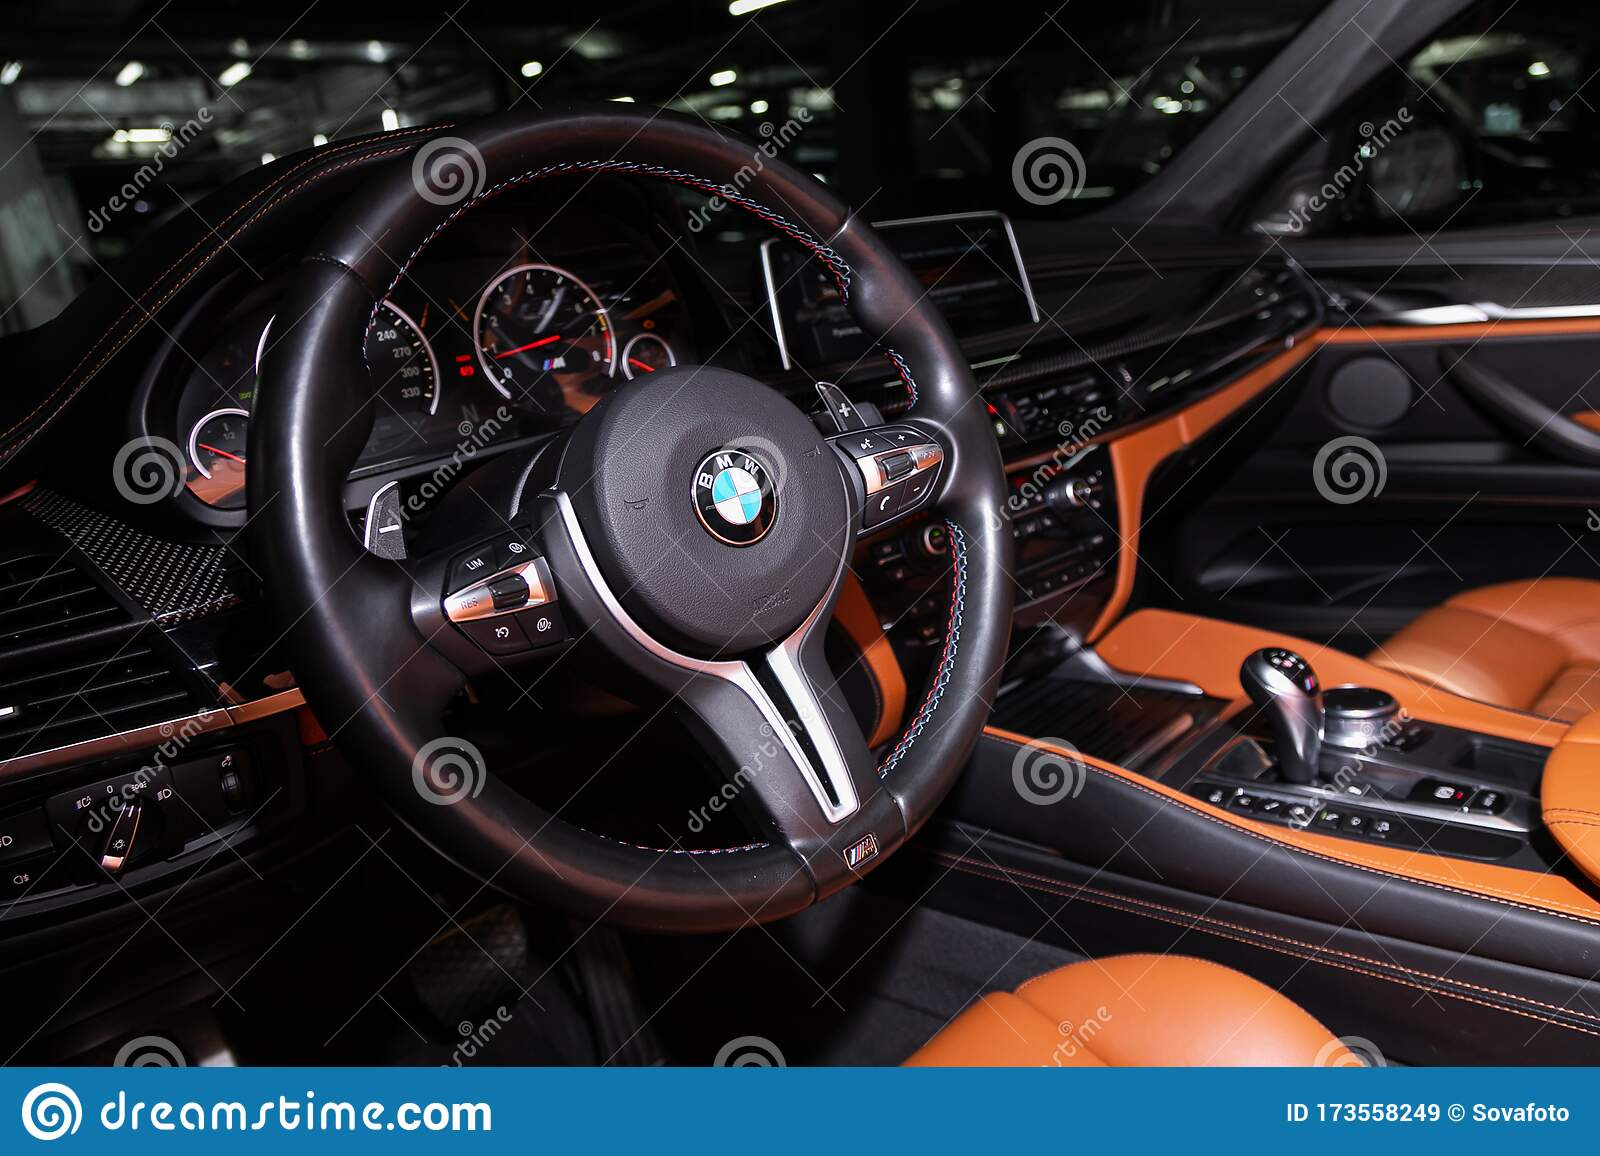 Novosibirsk Russia February 12 2020 Bmw X6 Editorial Stock Image Image Of Equipment Leather 173558249